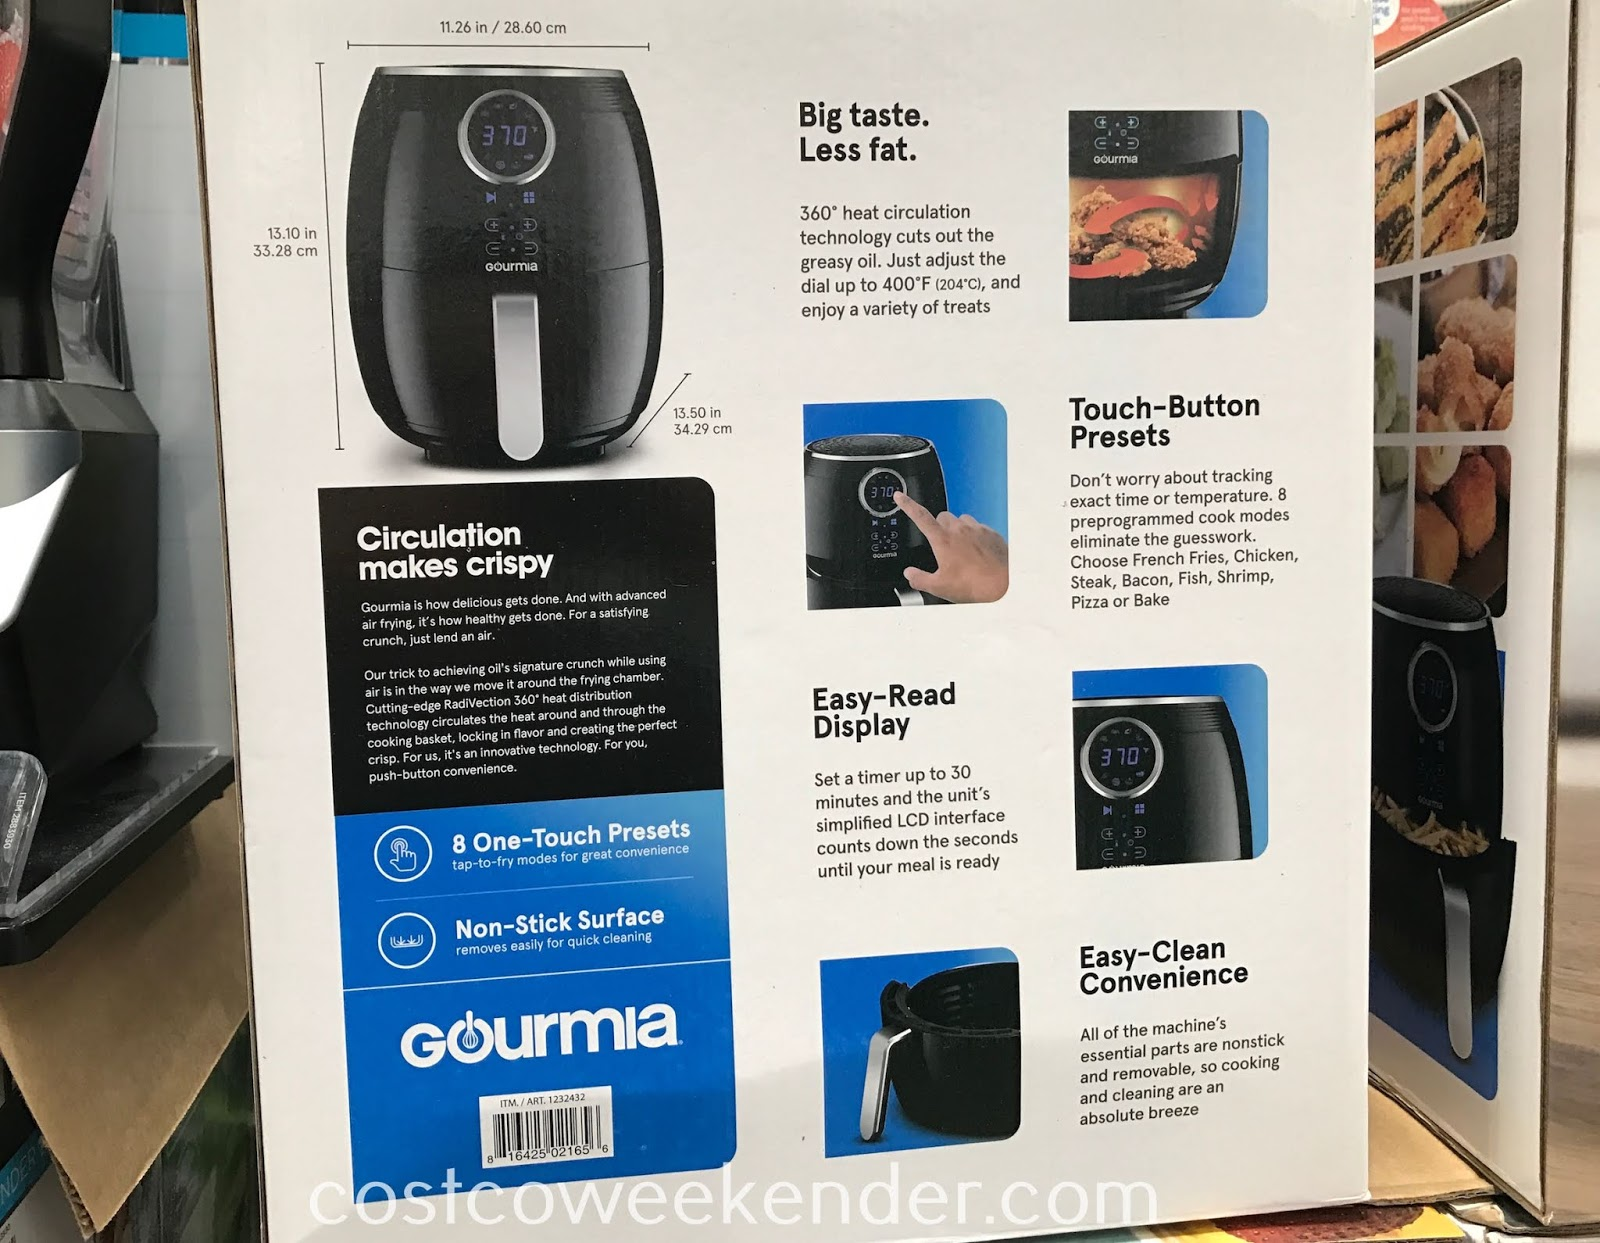 Avoid fried foods but enjoy the same great taste with the Gourmia Digital Air Fryer